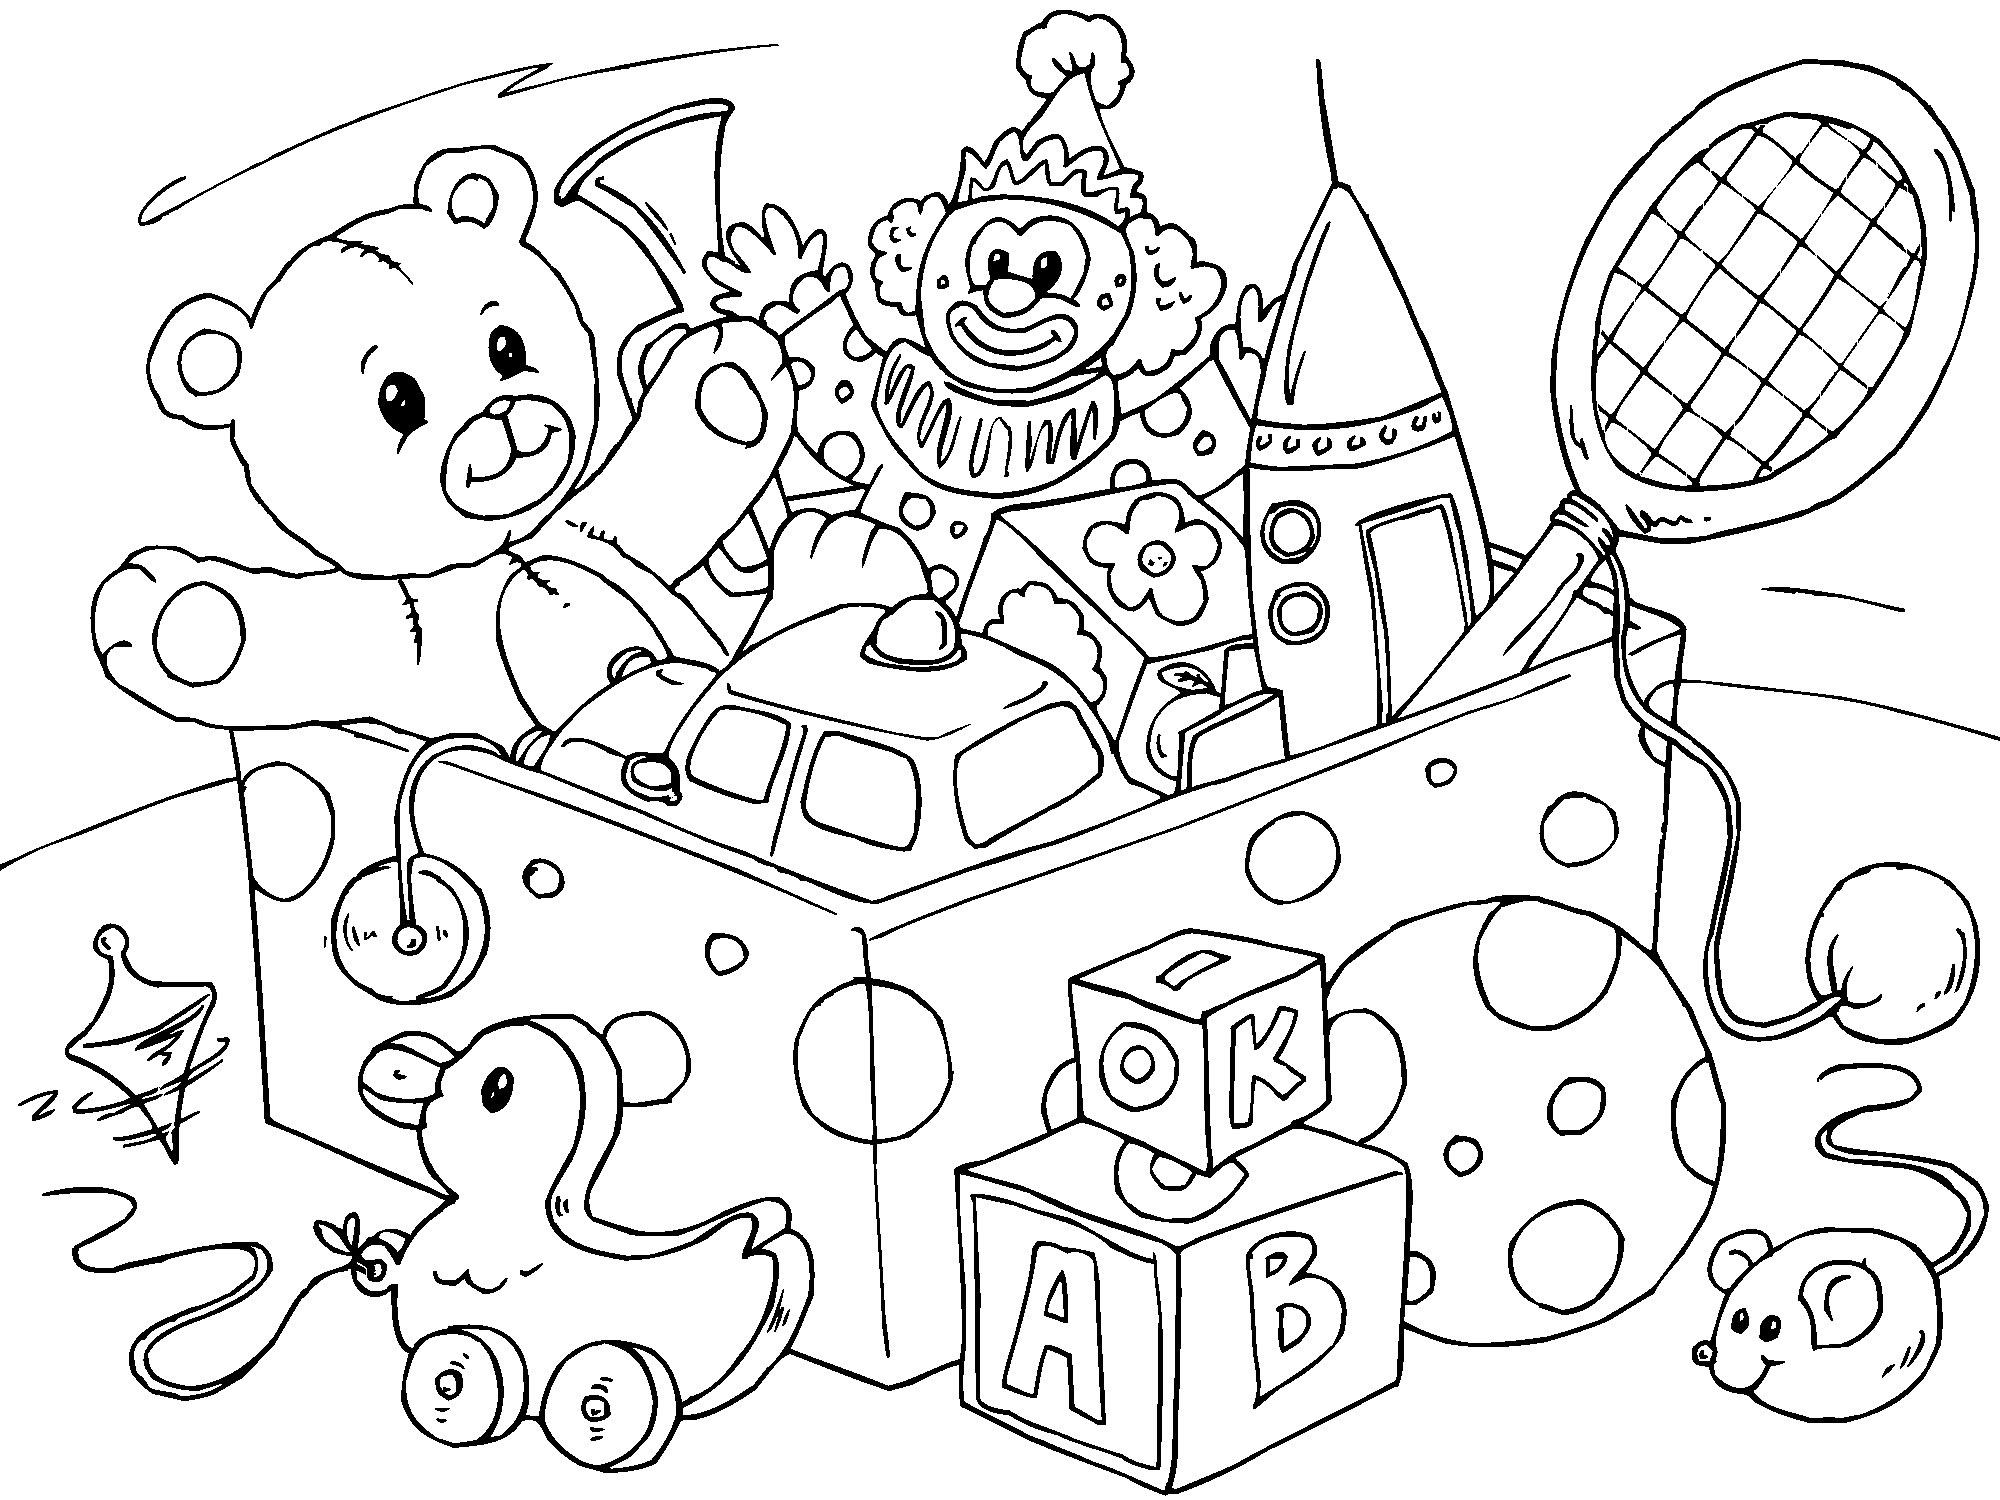 coloring page toys img 22821 - Toy Coloring Pages